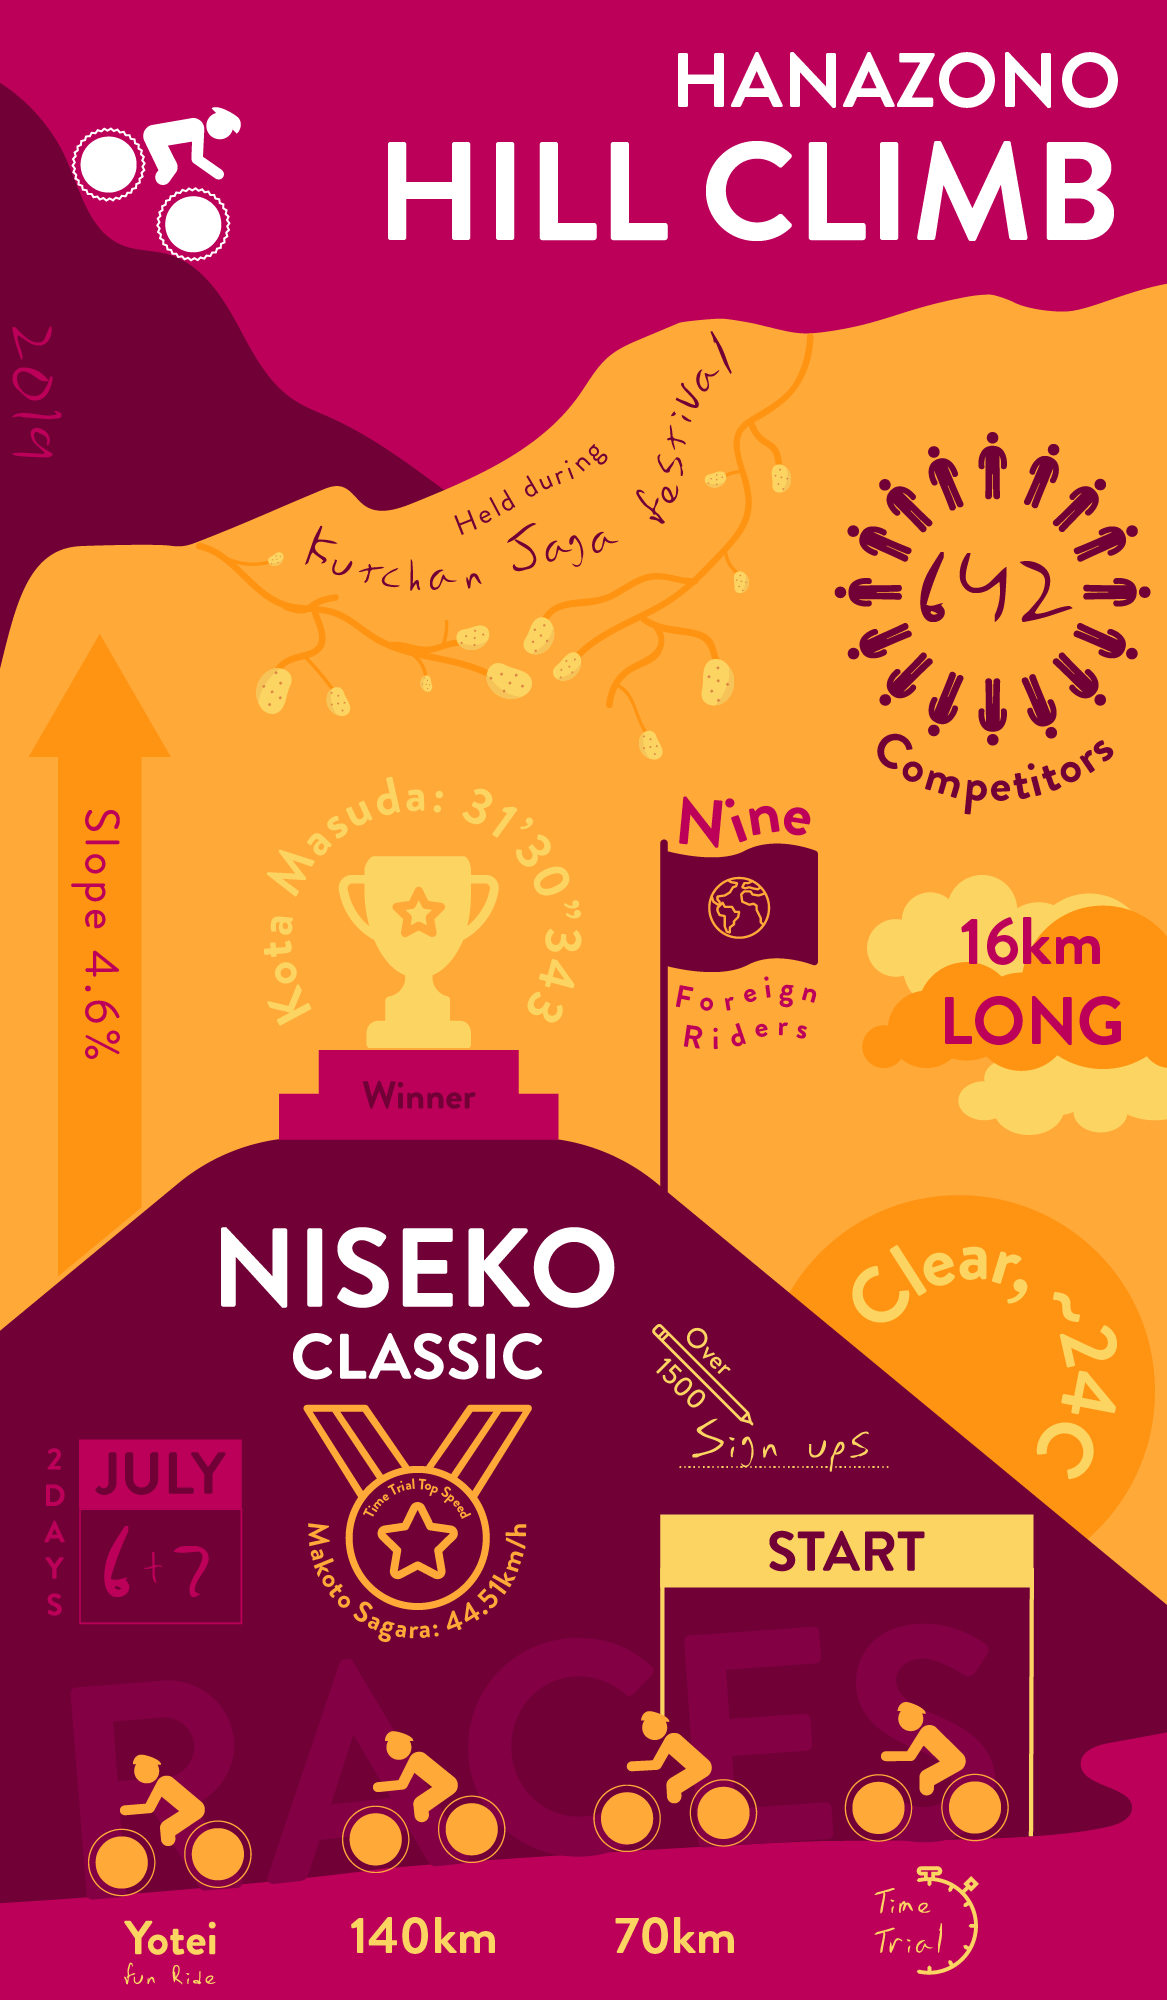 An infographic outlining the highlights of 2019's Niseko Classic and Hanazono Hill Climb bicycle races in Niseko, Japan.